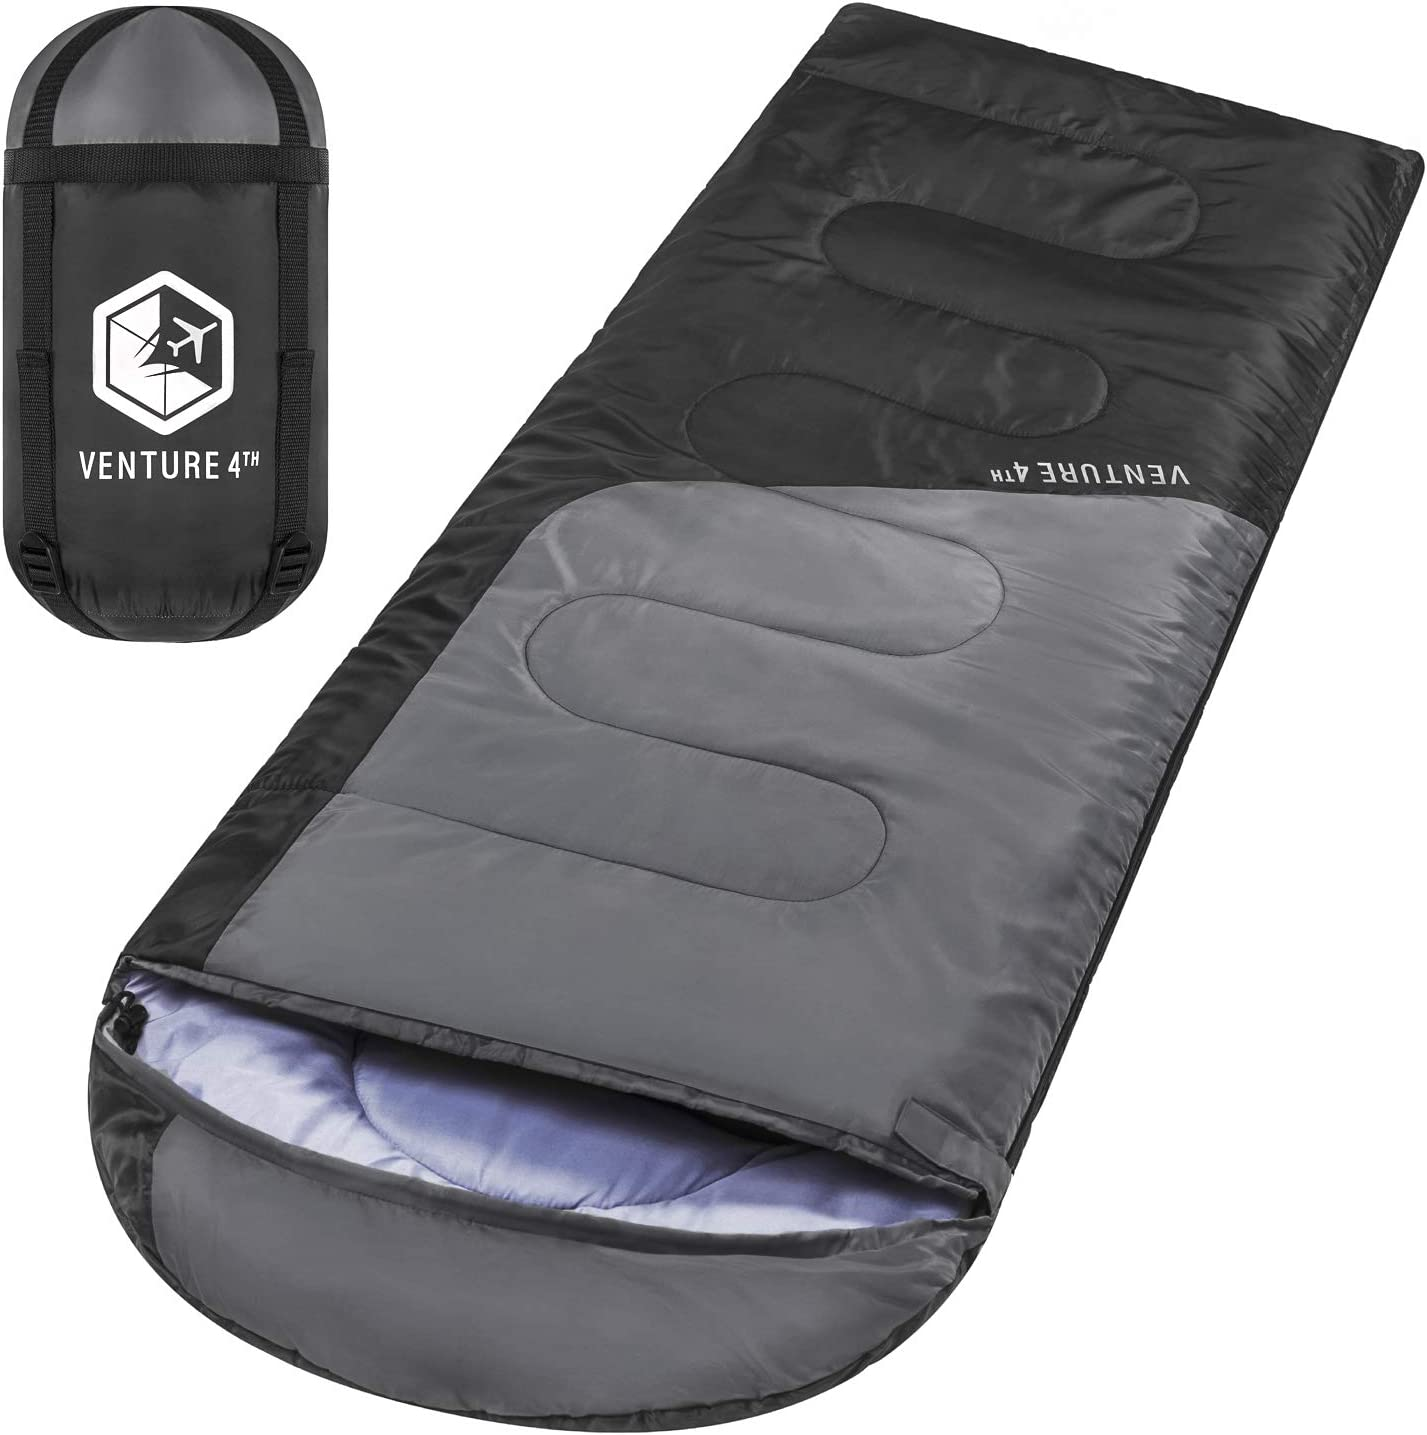 VENTURE 4TH Backpacking Sleeping Bag – Lightweight, Comfortable, Water Resistant, 3 Season Sleeping Bag for Adults & Kids – Ideal for Hiking, Camping ...